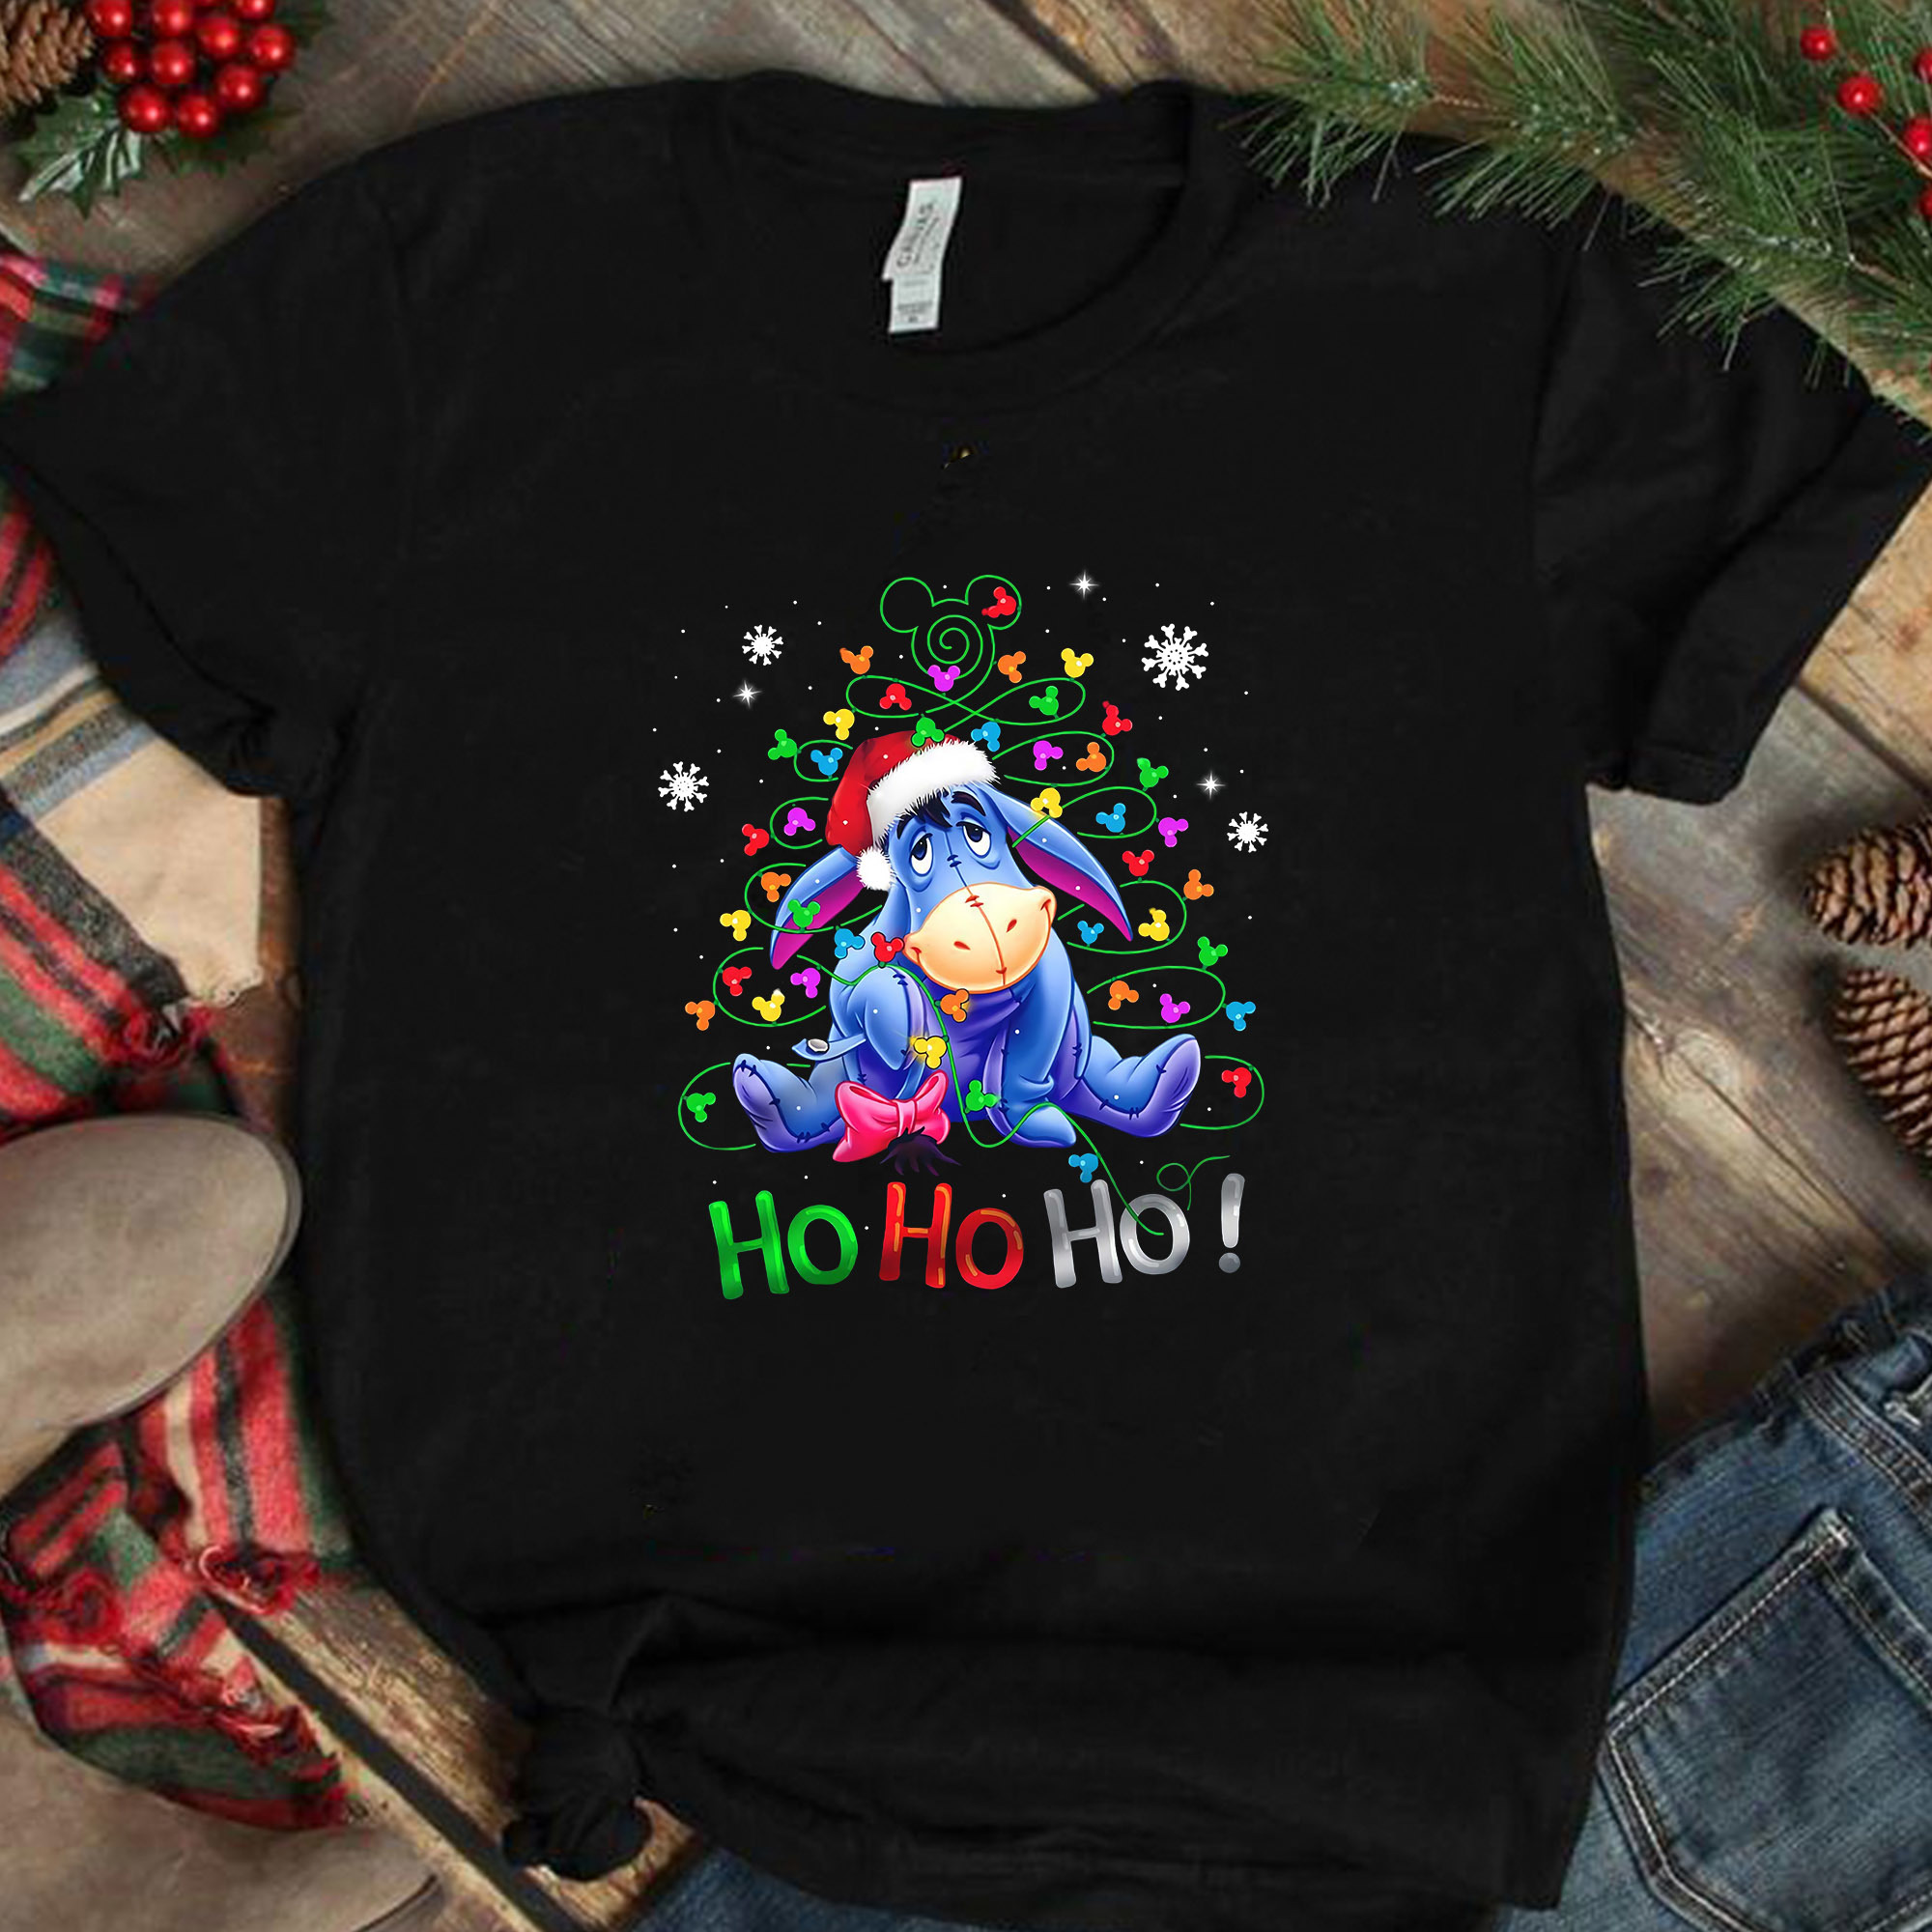 Hohoho Eeyore png, Eeyore png, The Grinch png, funny Grinch png, Christmas png,